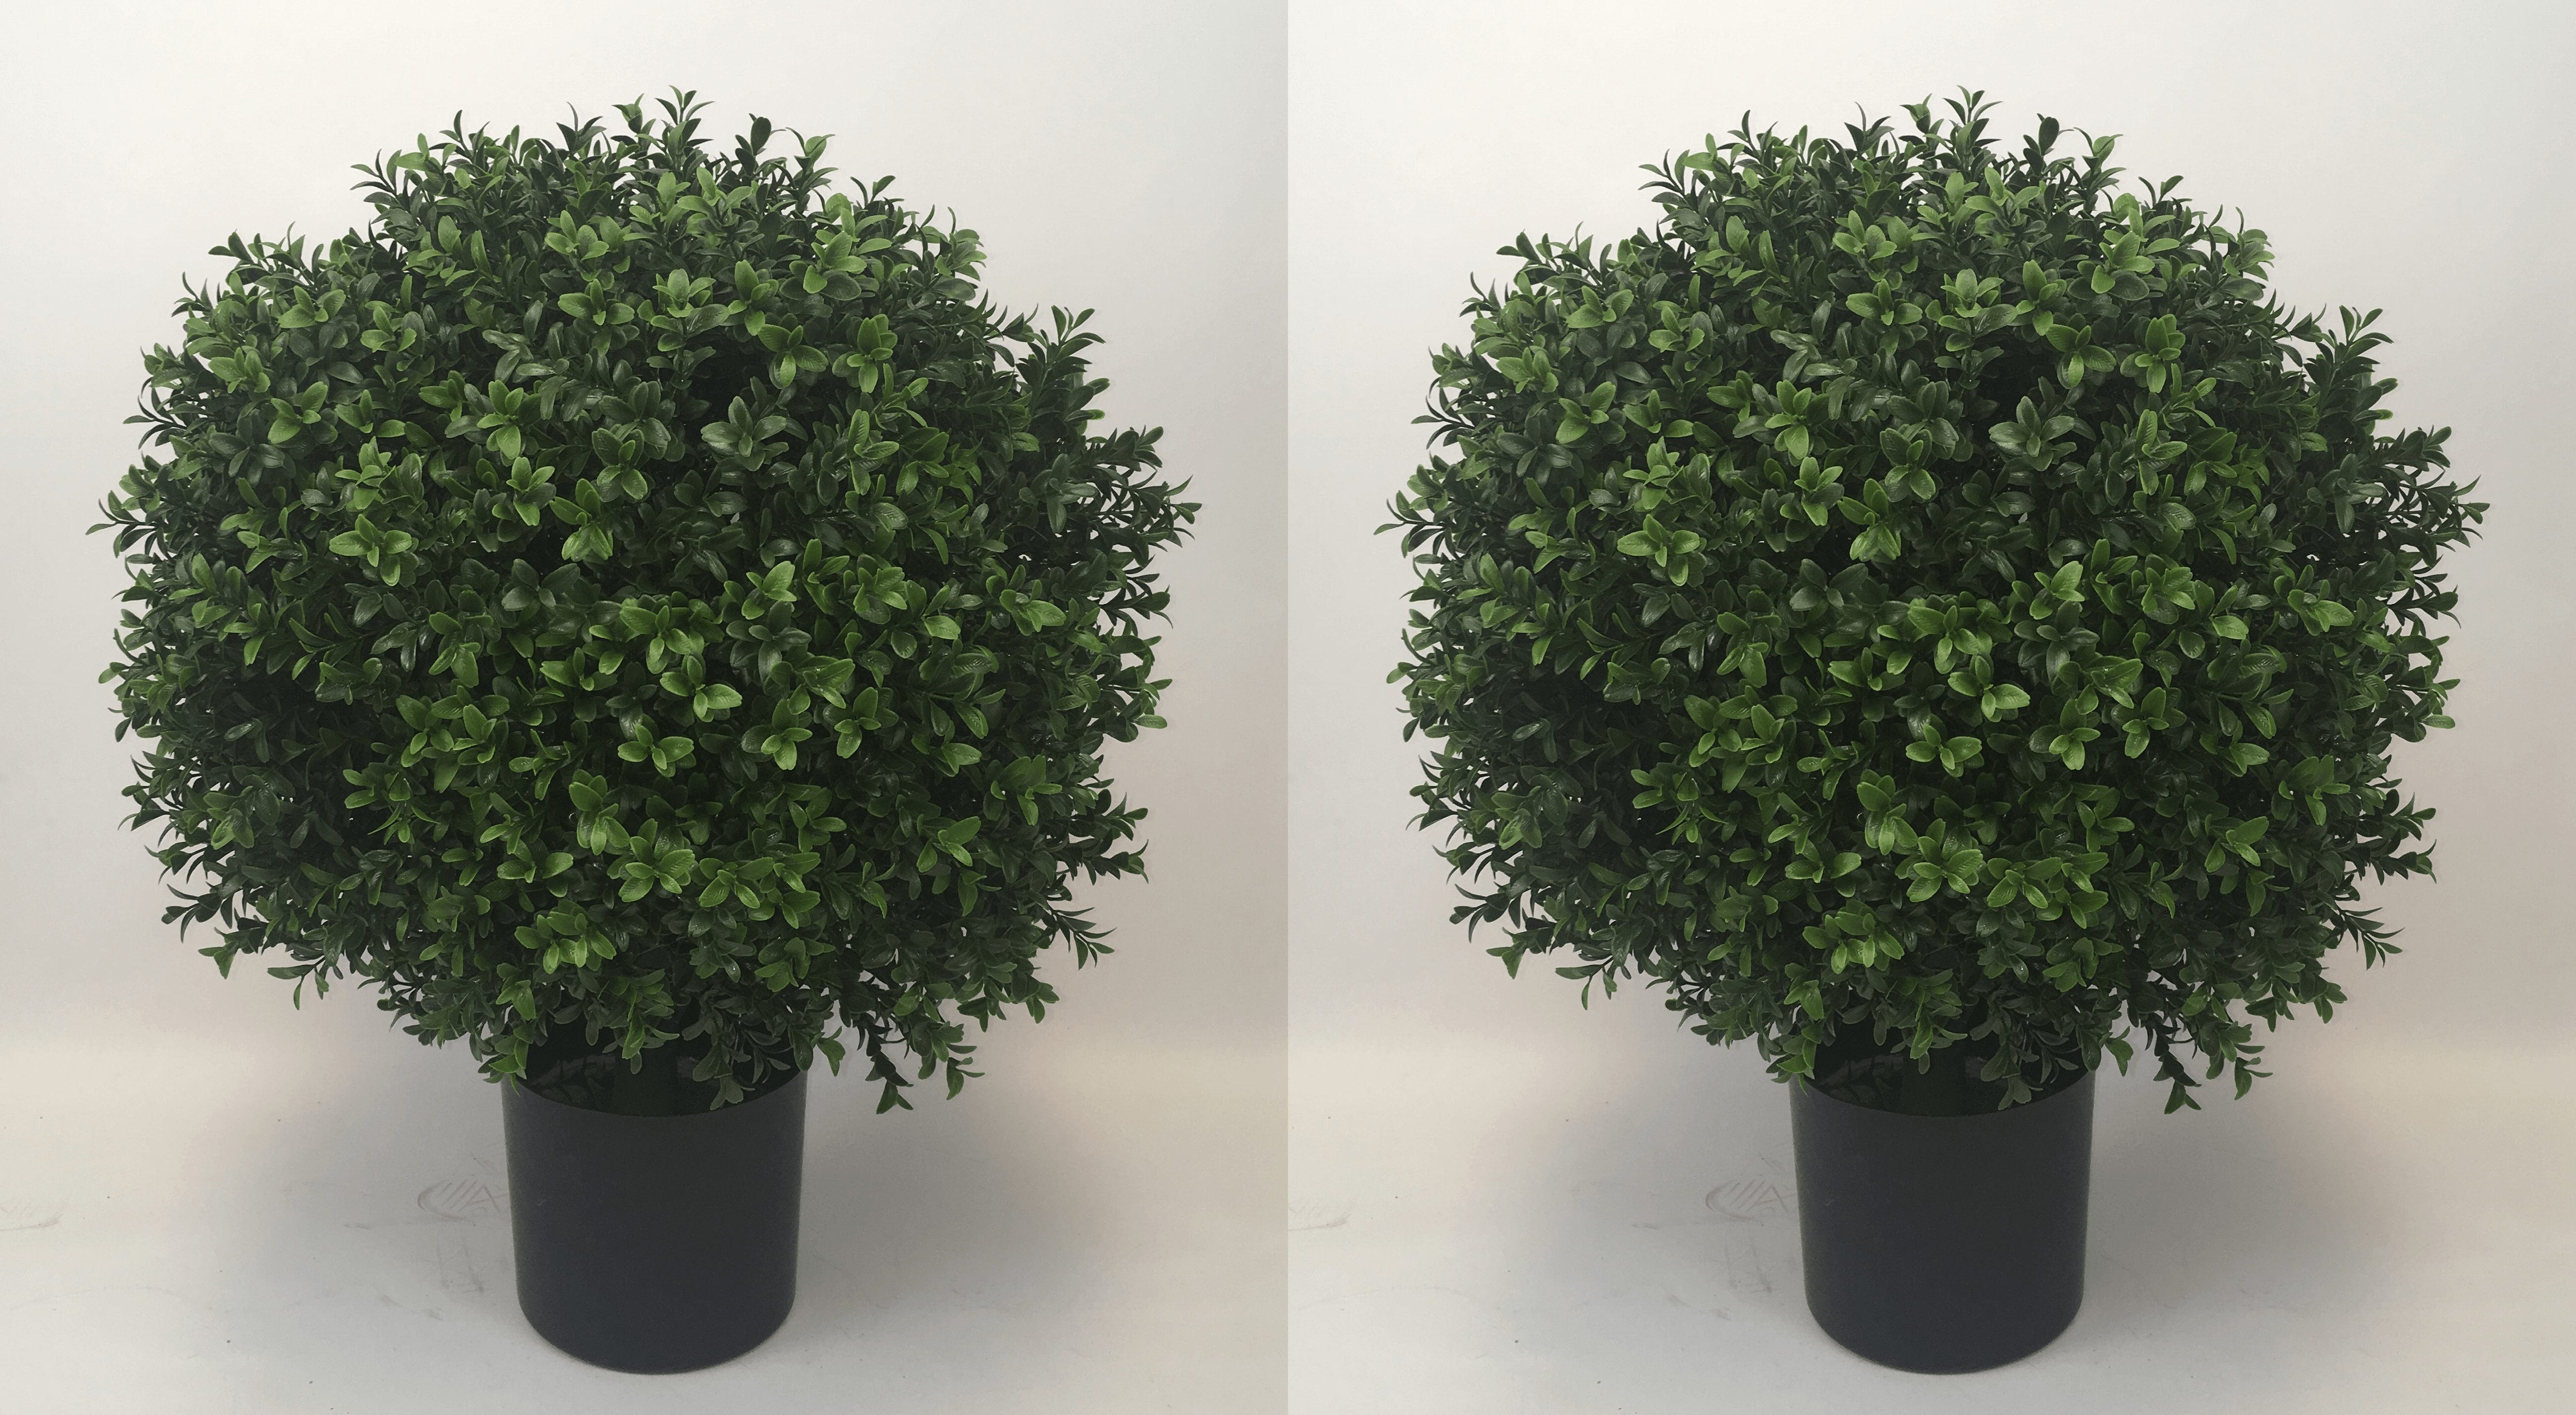 One Outdoor Over 2 Foot Tall 26 by 18 Artificial Boxwood Ball Topiary Bush Potted Tree UV Rated